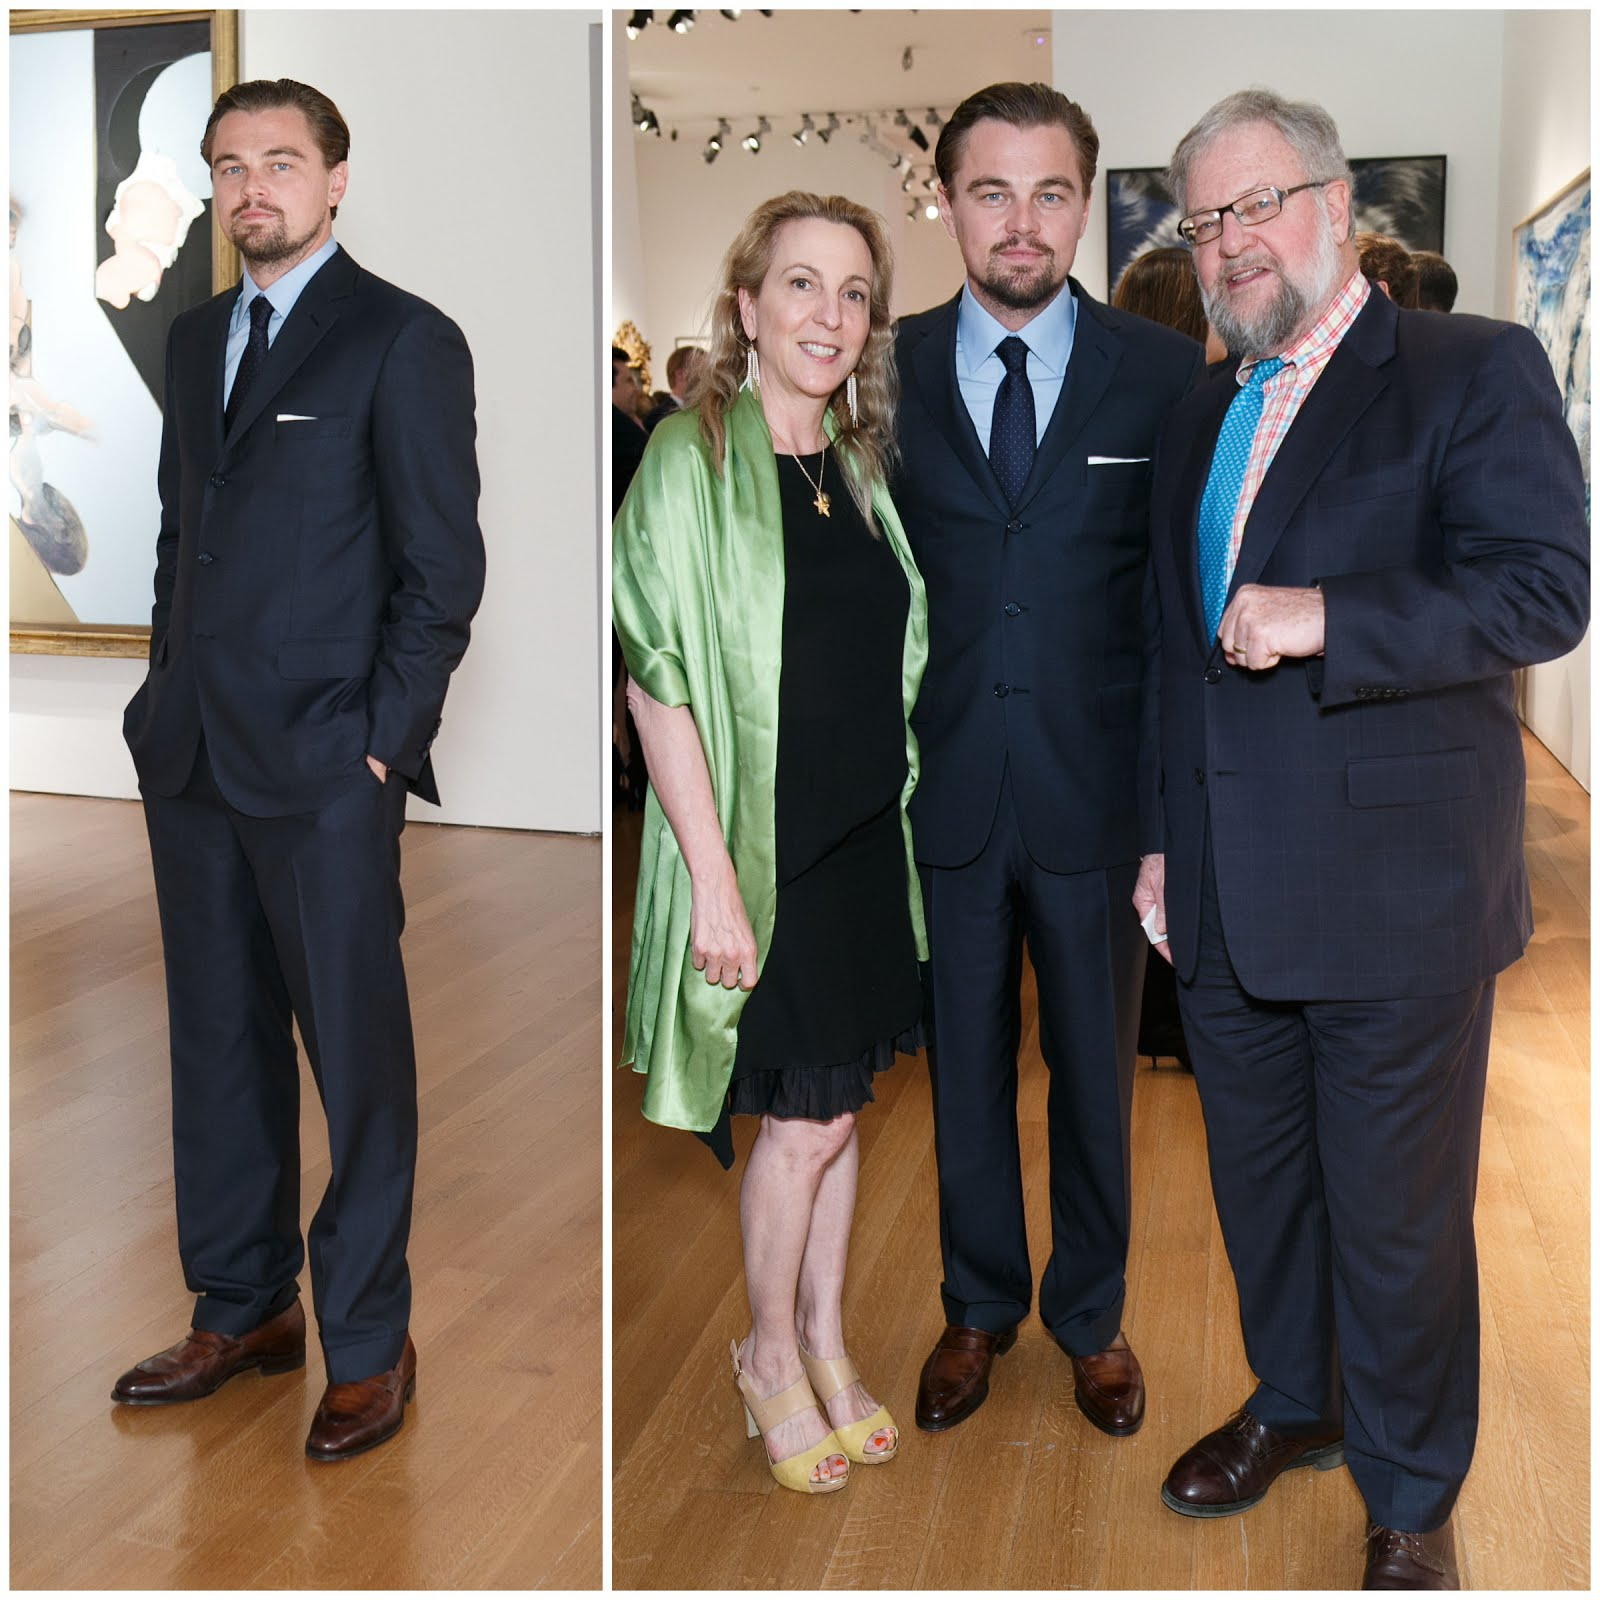 00O00 Menswear Blog: Leonardo DiCaprio in Brioni - 'The 11th Hour Charity Auction'